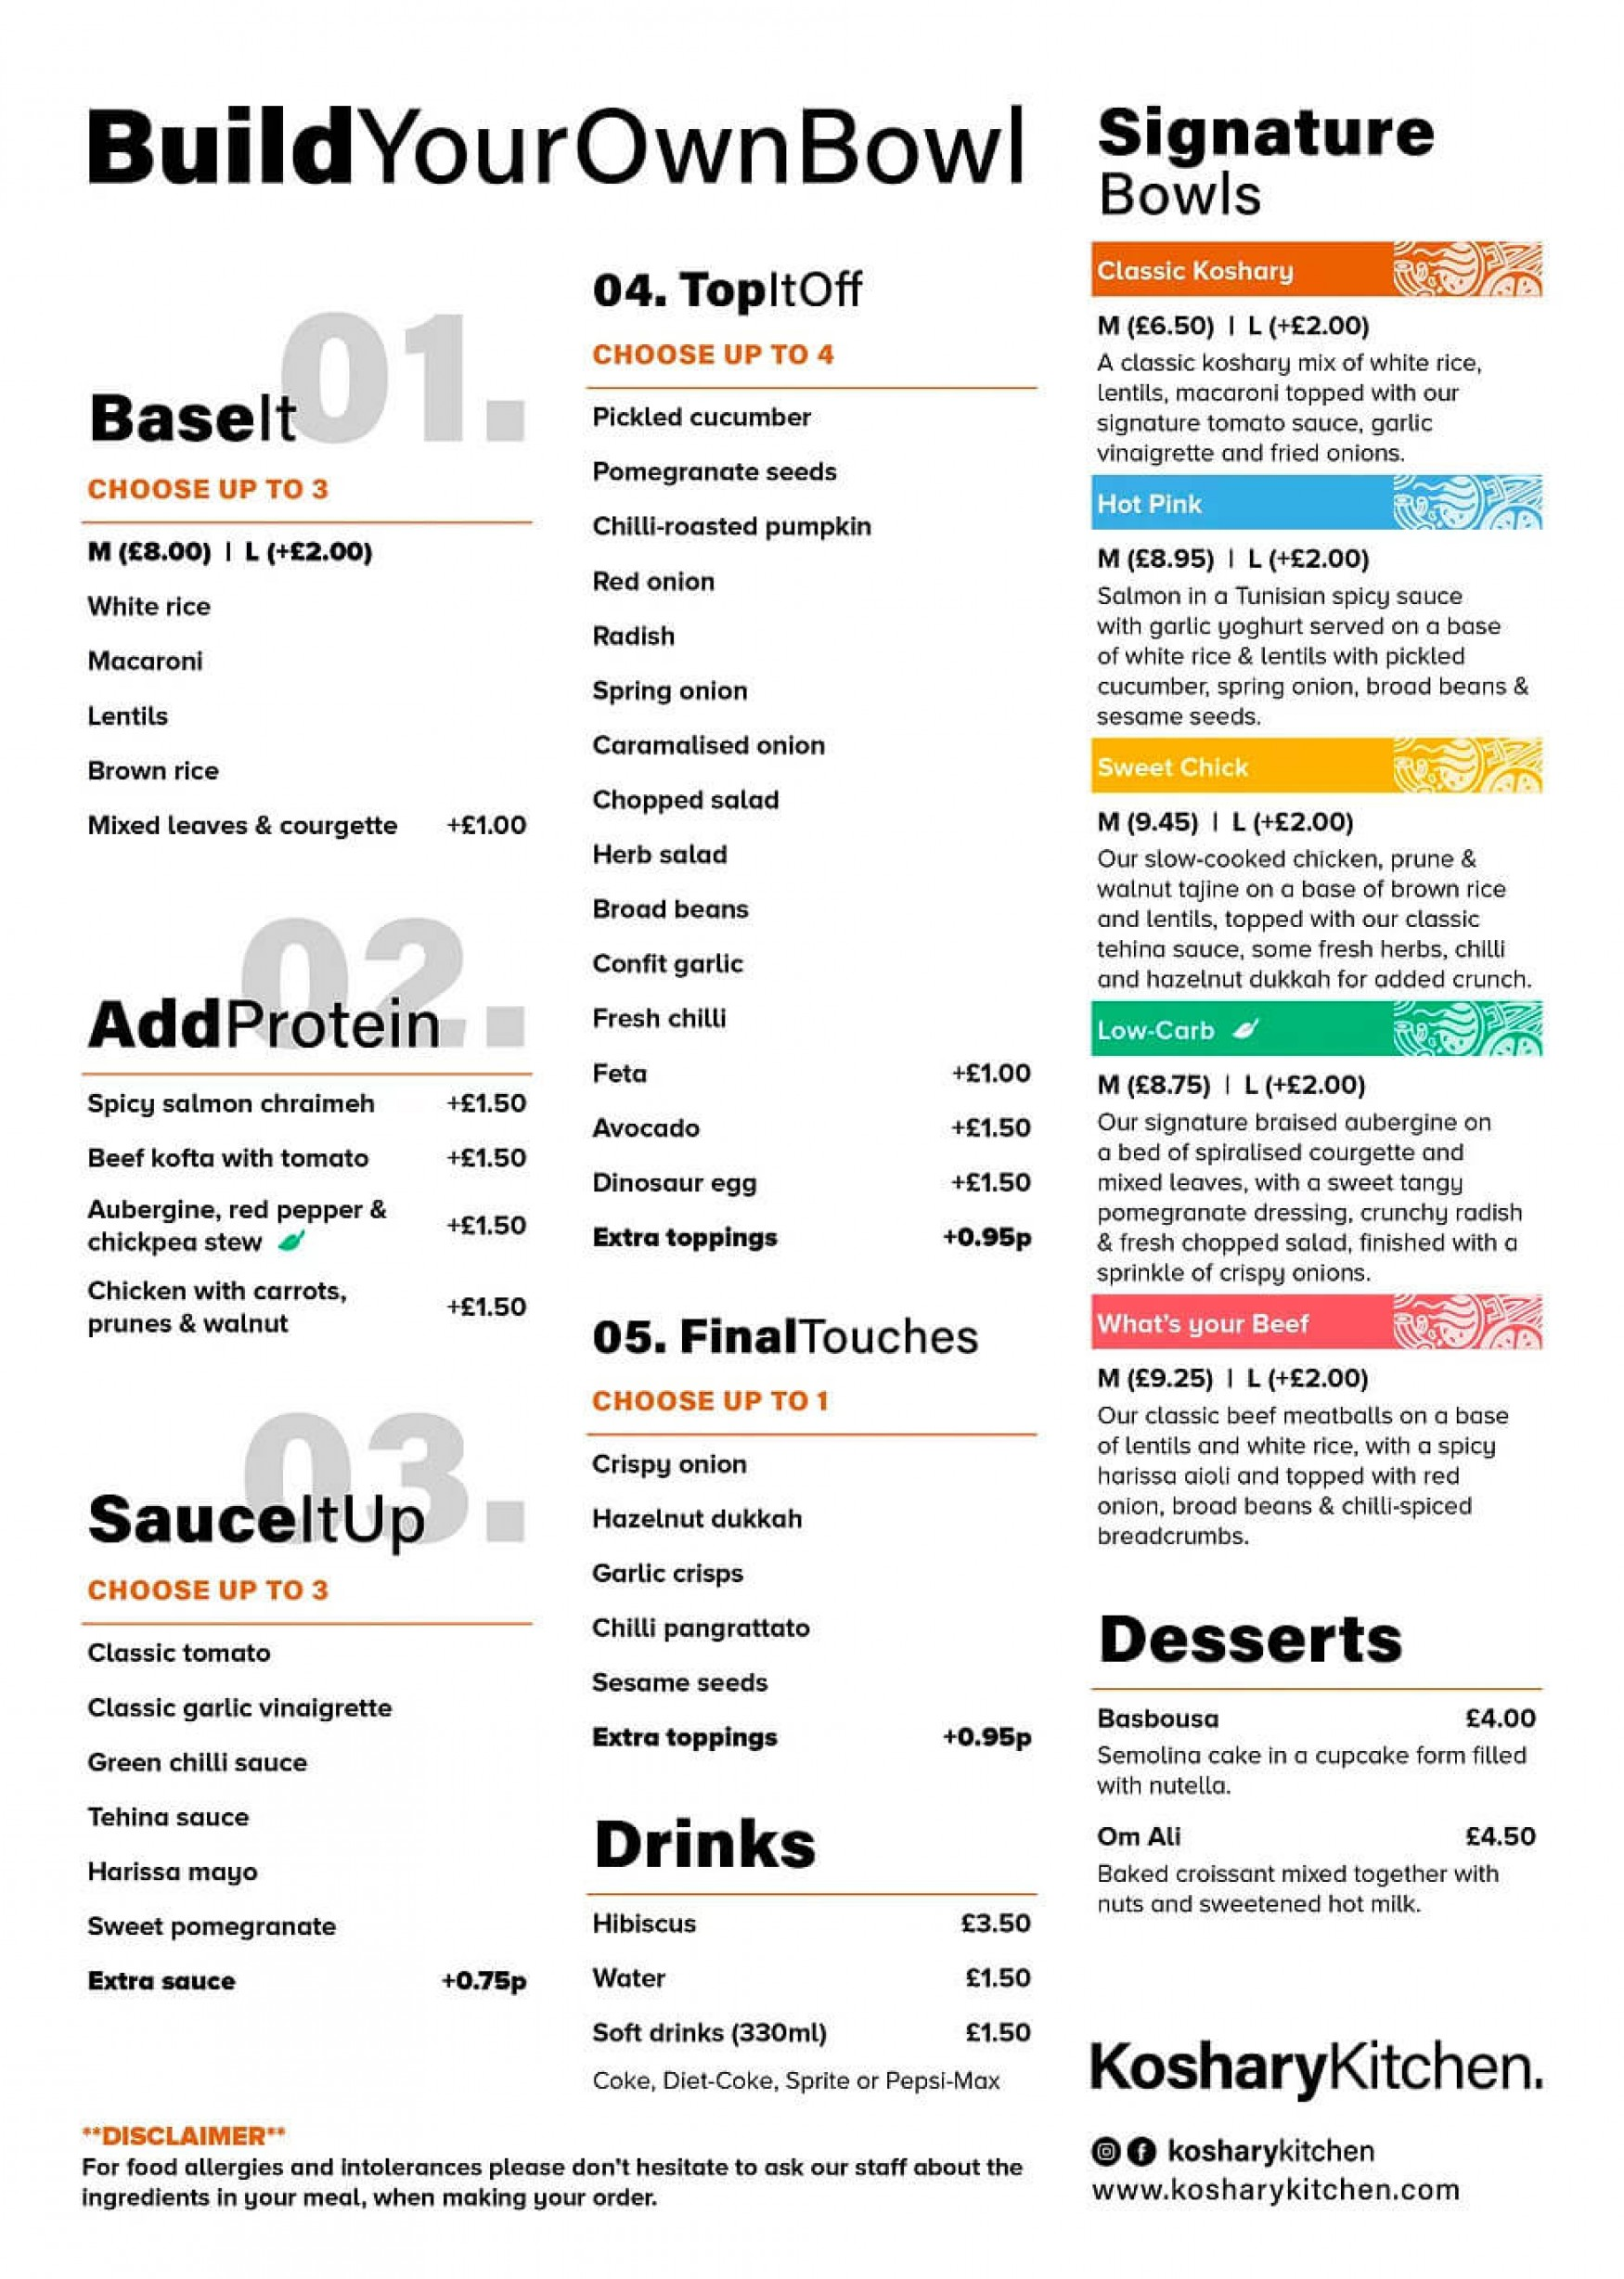 Koshary Kitchen menu